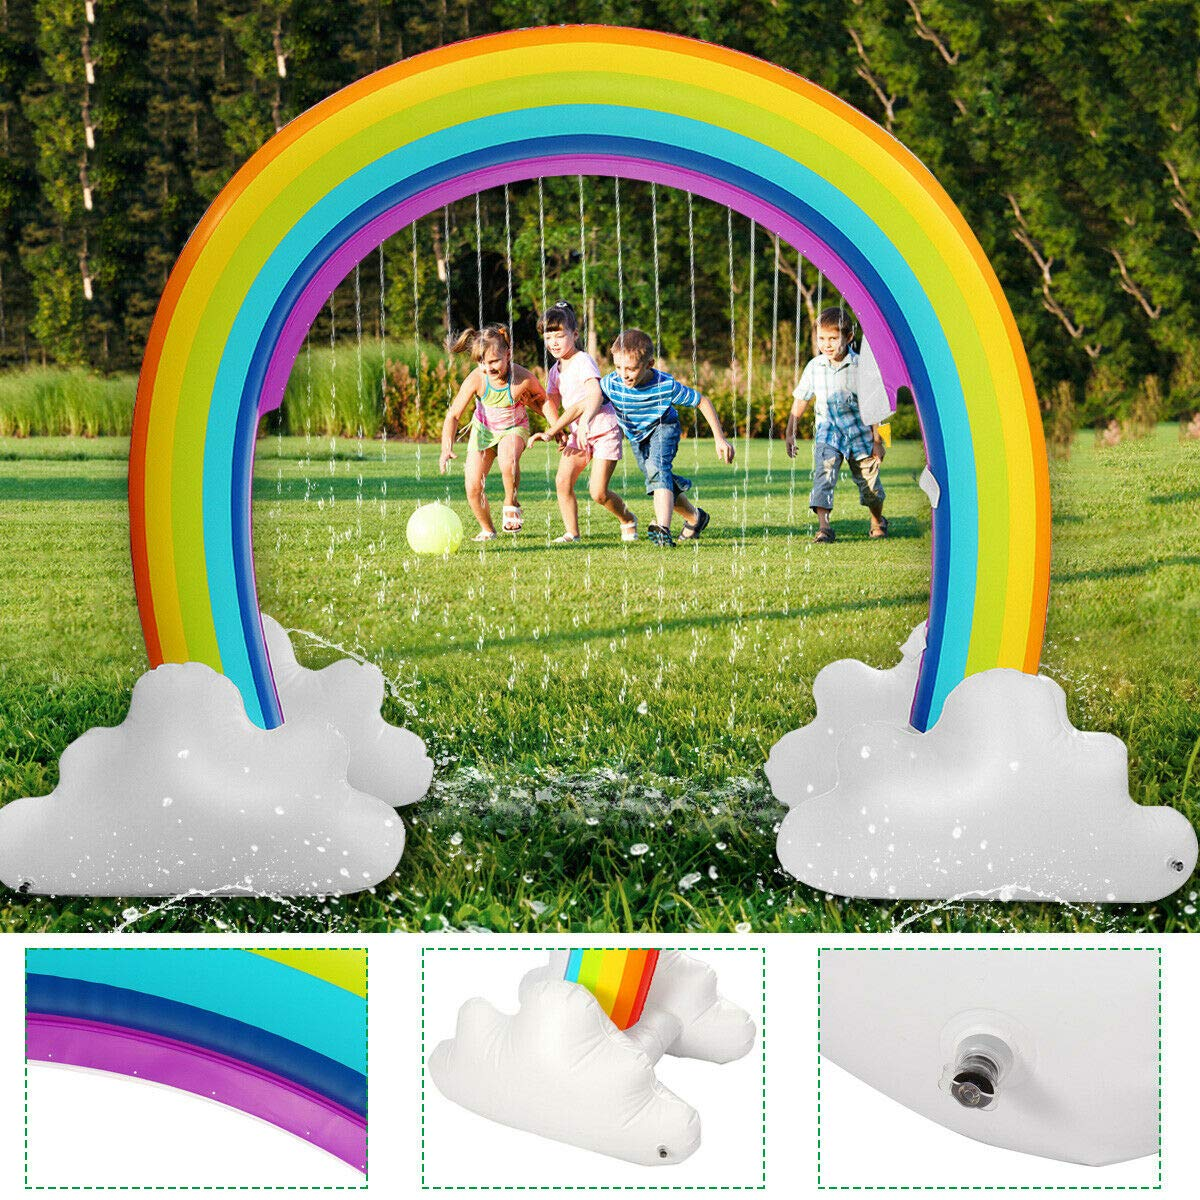 MerryXD Rainbow Sprinkler,Giant Water Inflatable Arch Sprinkler Outdoor Summer Toys for Kids by MerryXD (Image #7)